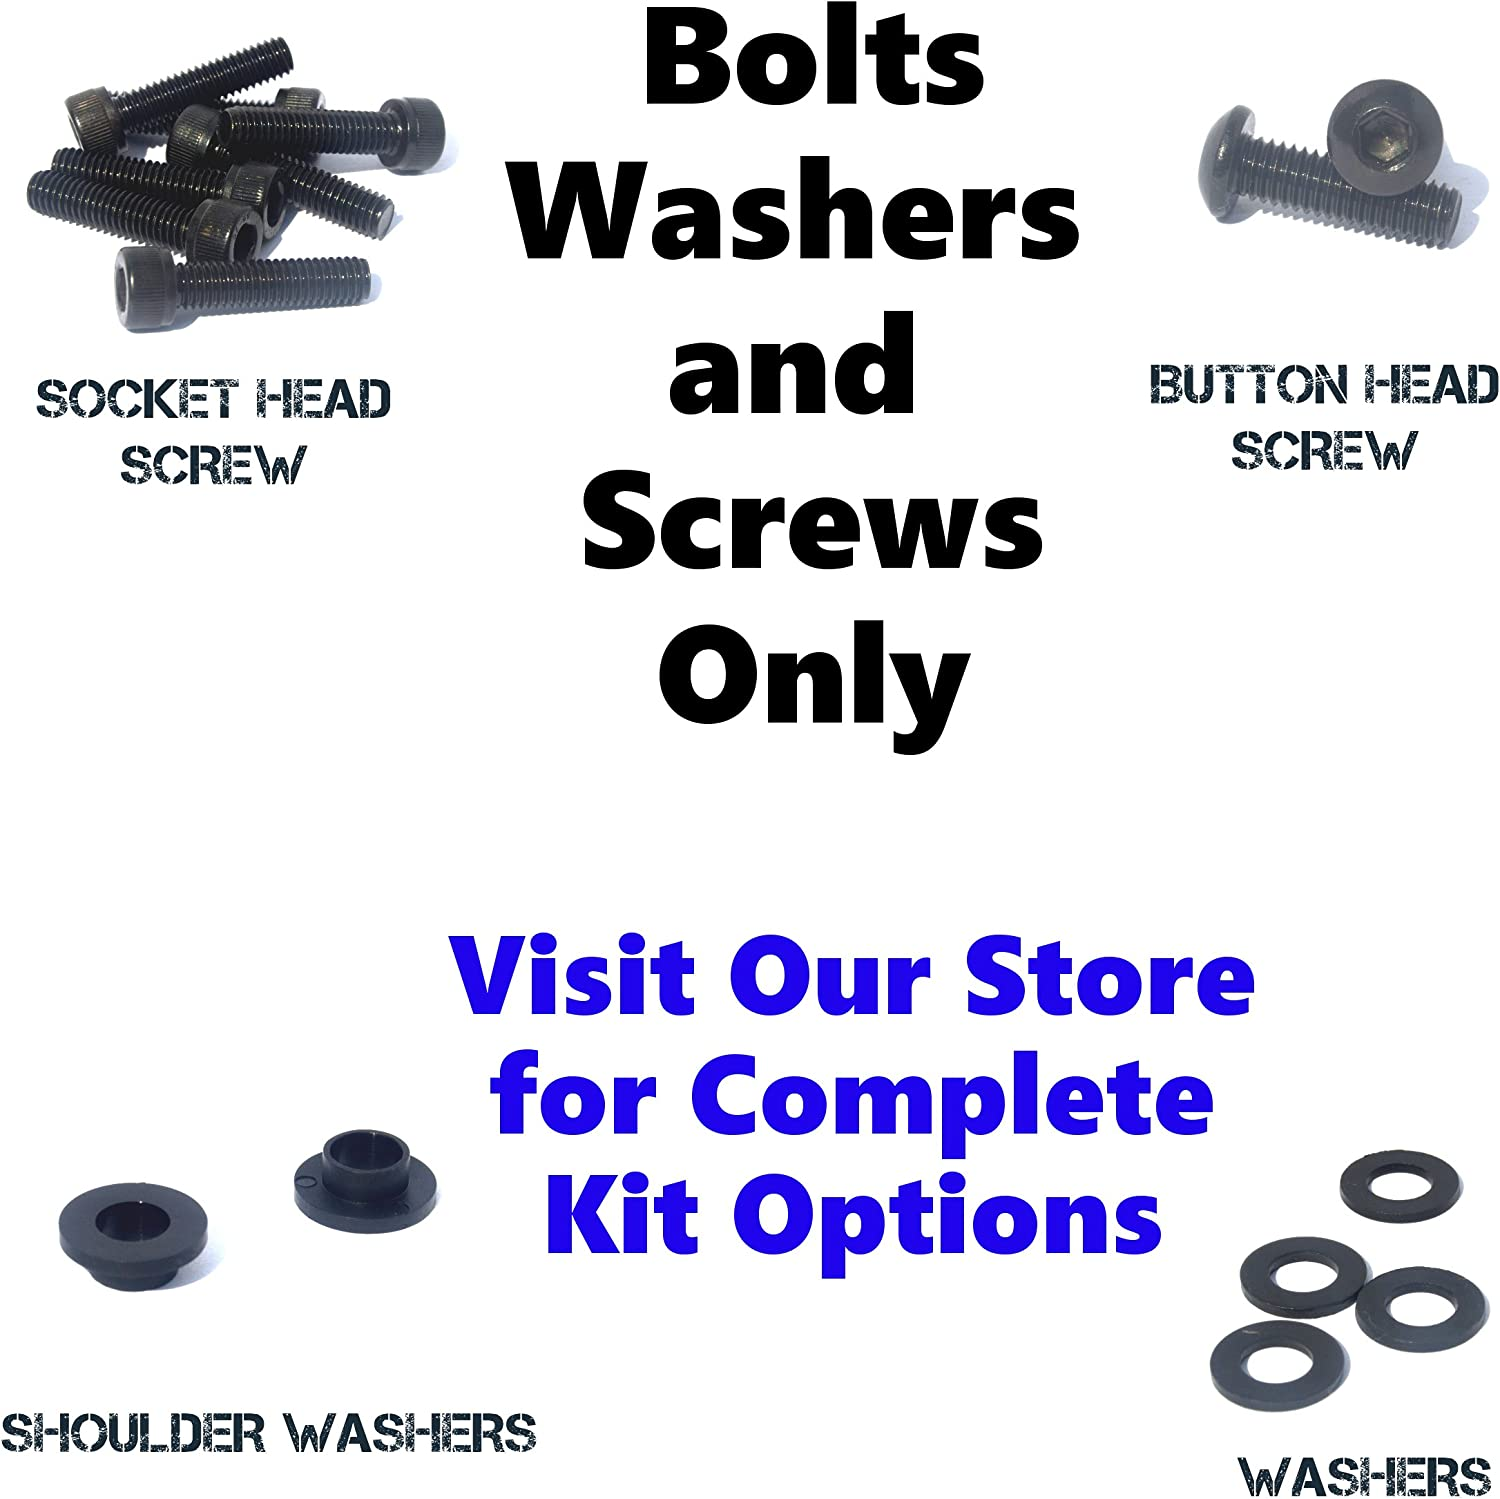 GSX750F Katana 2003-2006 Body Screws Black Standard Motorcycle Fairing Bolt Kit For Suzuki GSX600F Fasteners and Hardware